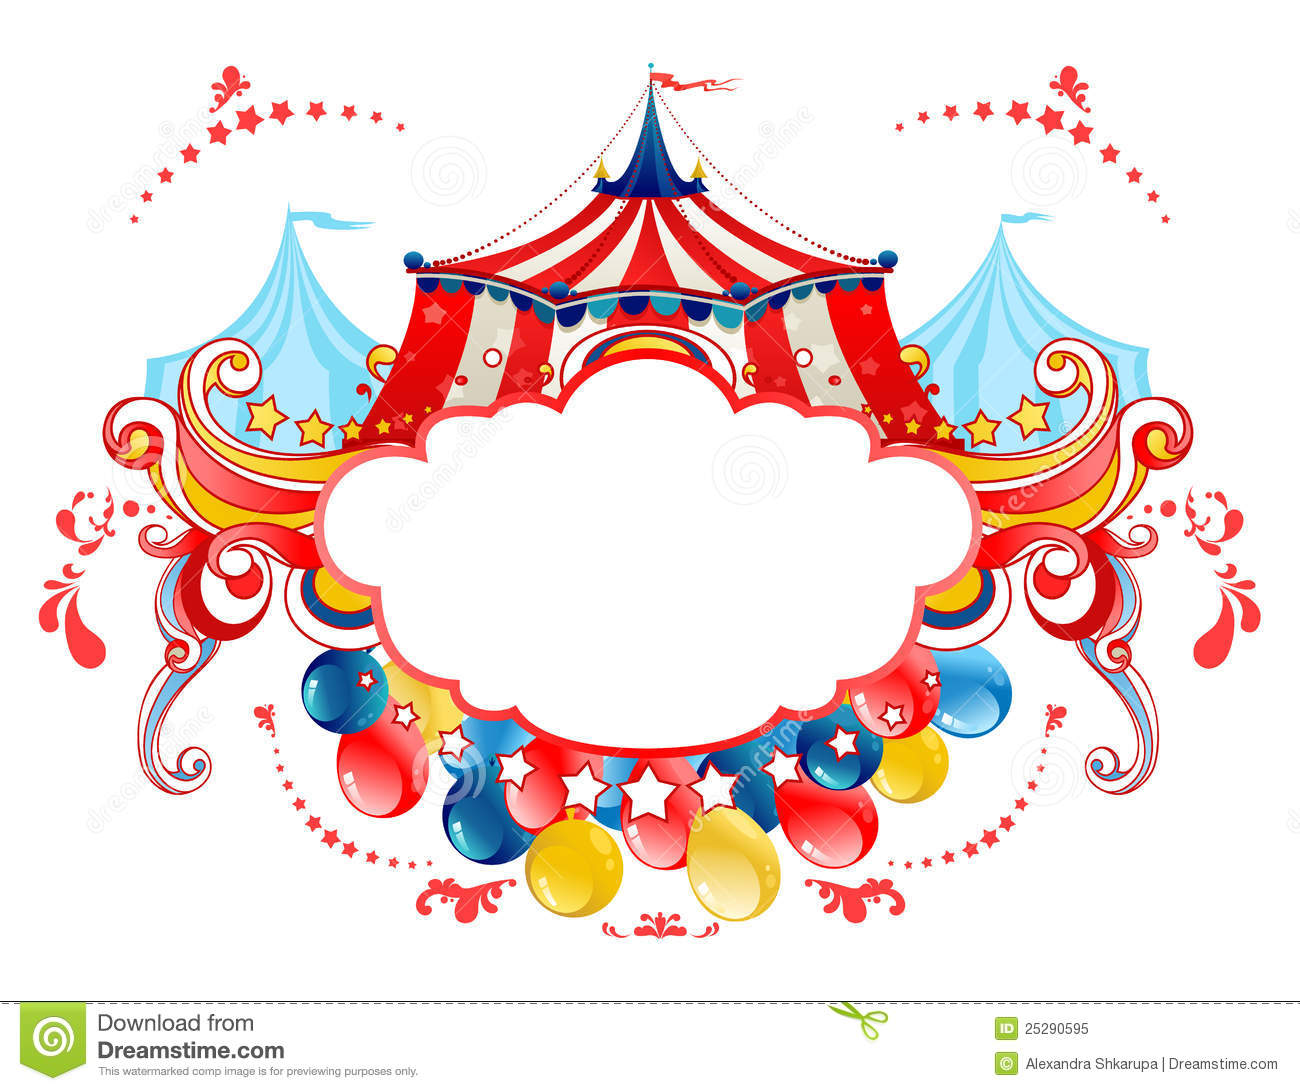 Circus Tent Frame Royalty Free Stock Photo - Image: 25290595